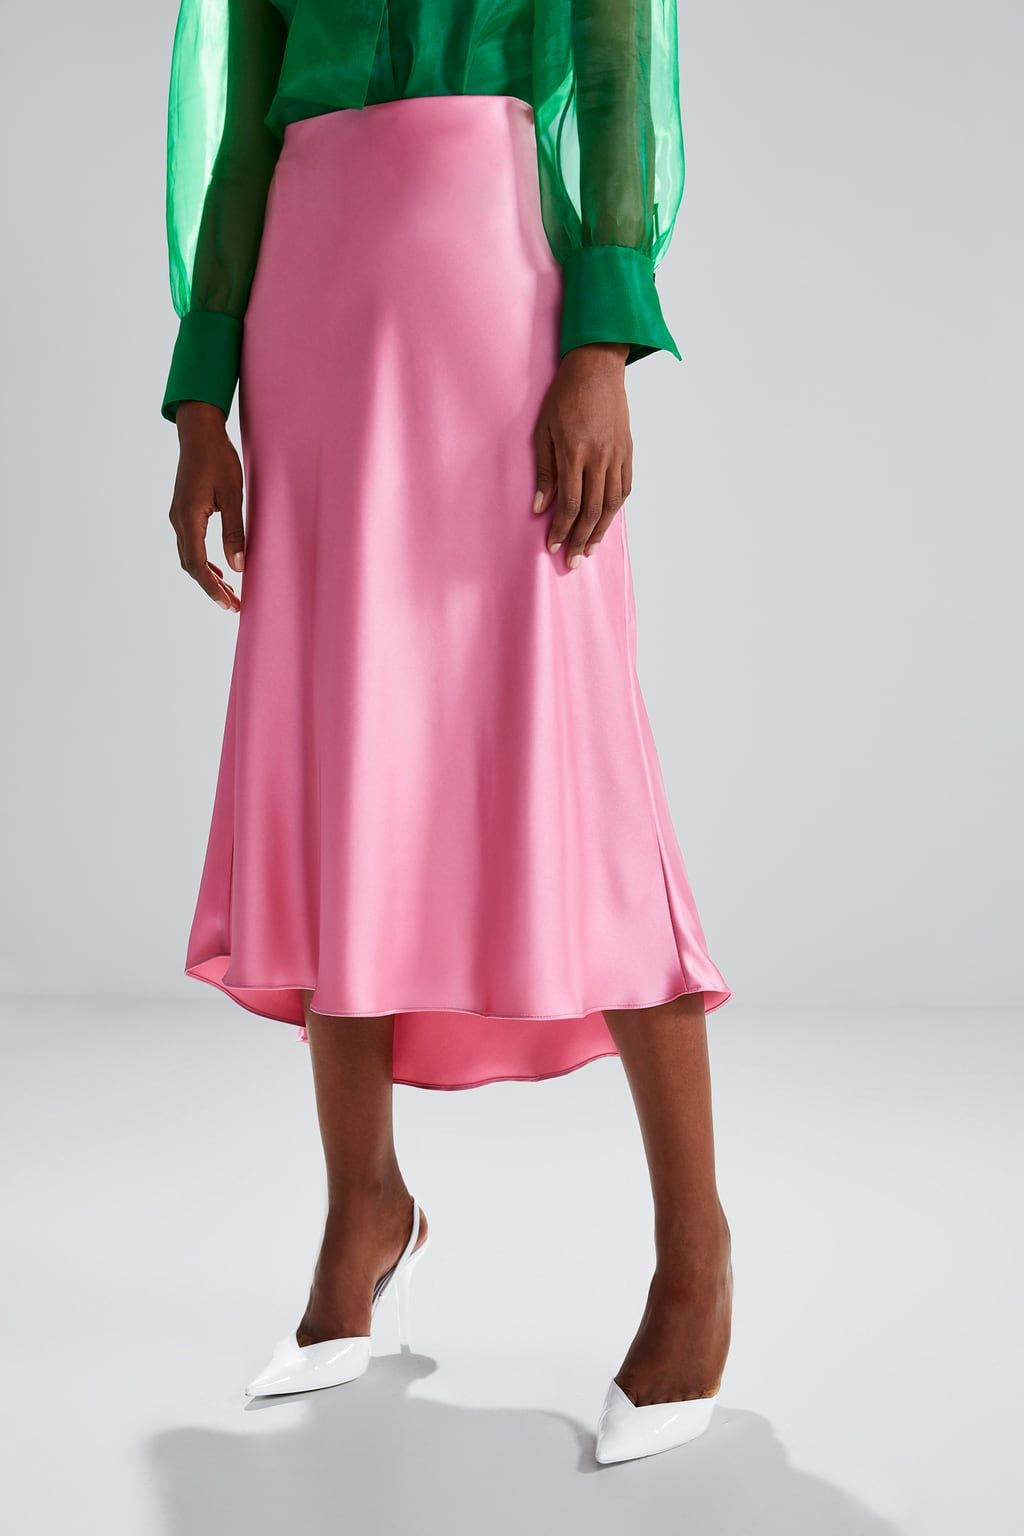 4b50d2c57b Satin skirt in 2019 | Style: Clothes | Satin skirt, Skirts, Flowy skirt